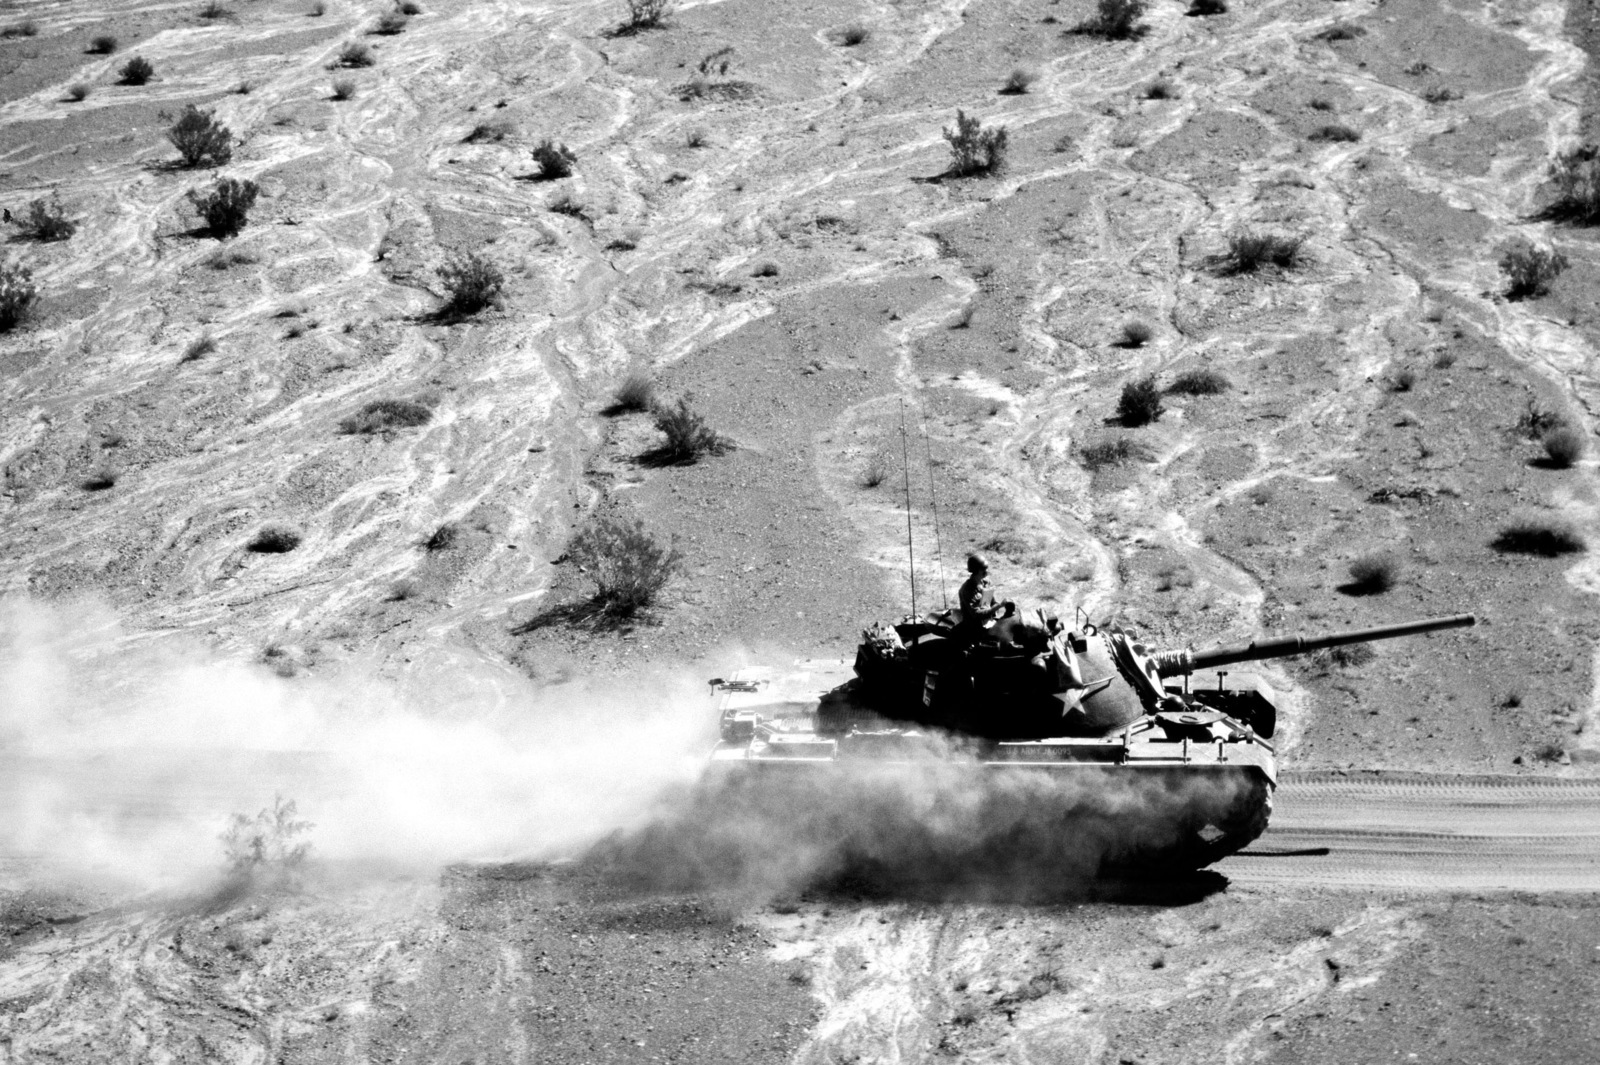 An Army M60 main battle tank moves across the Mojave Desert during Exercise BRAVE SHIELD XVI